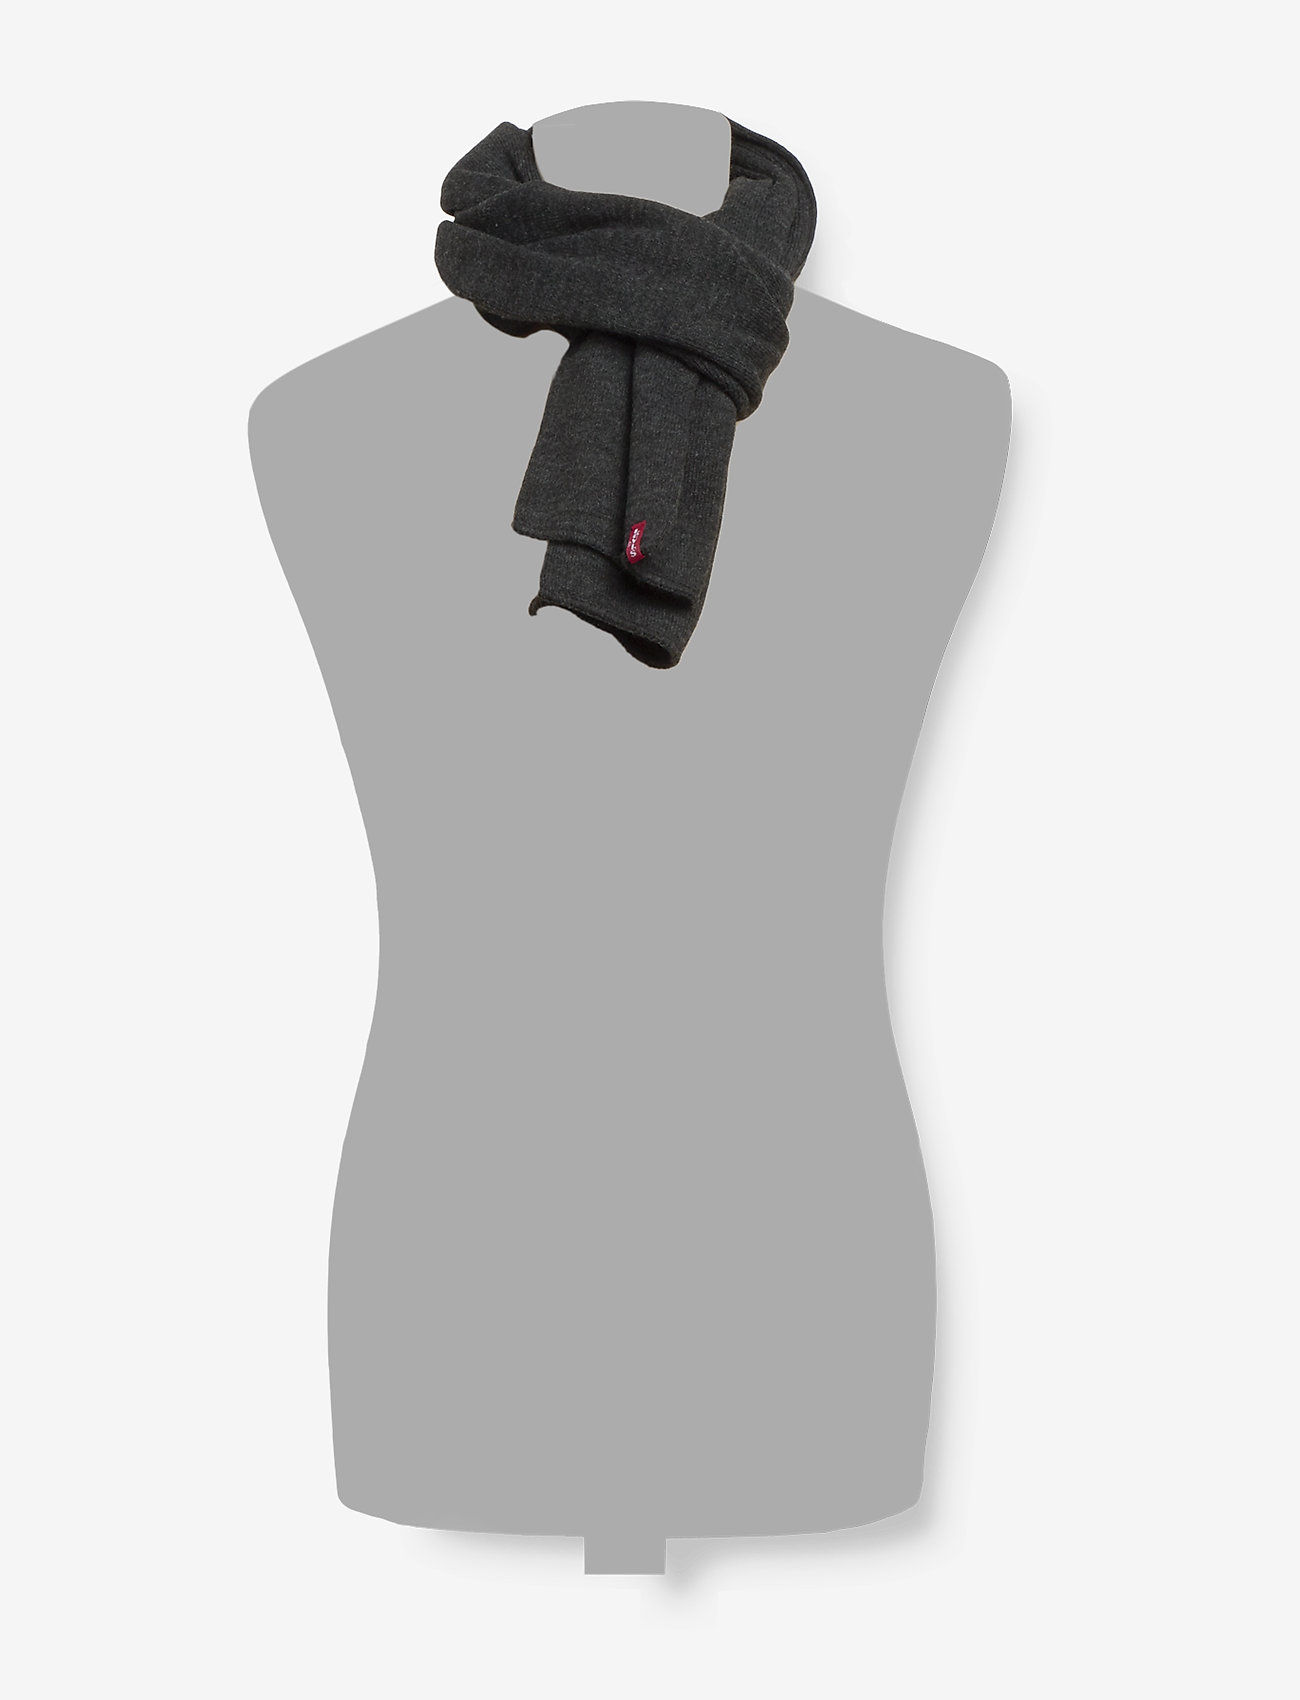 Levi's Footwear & Acc - LIMIT SCARF - sjalar & halsdukar - dark grey - 1